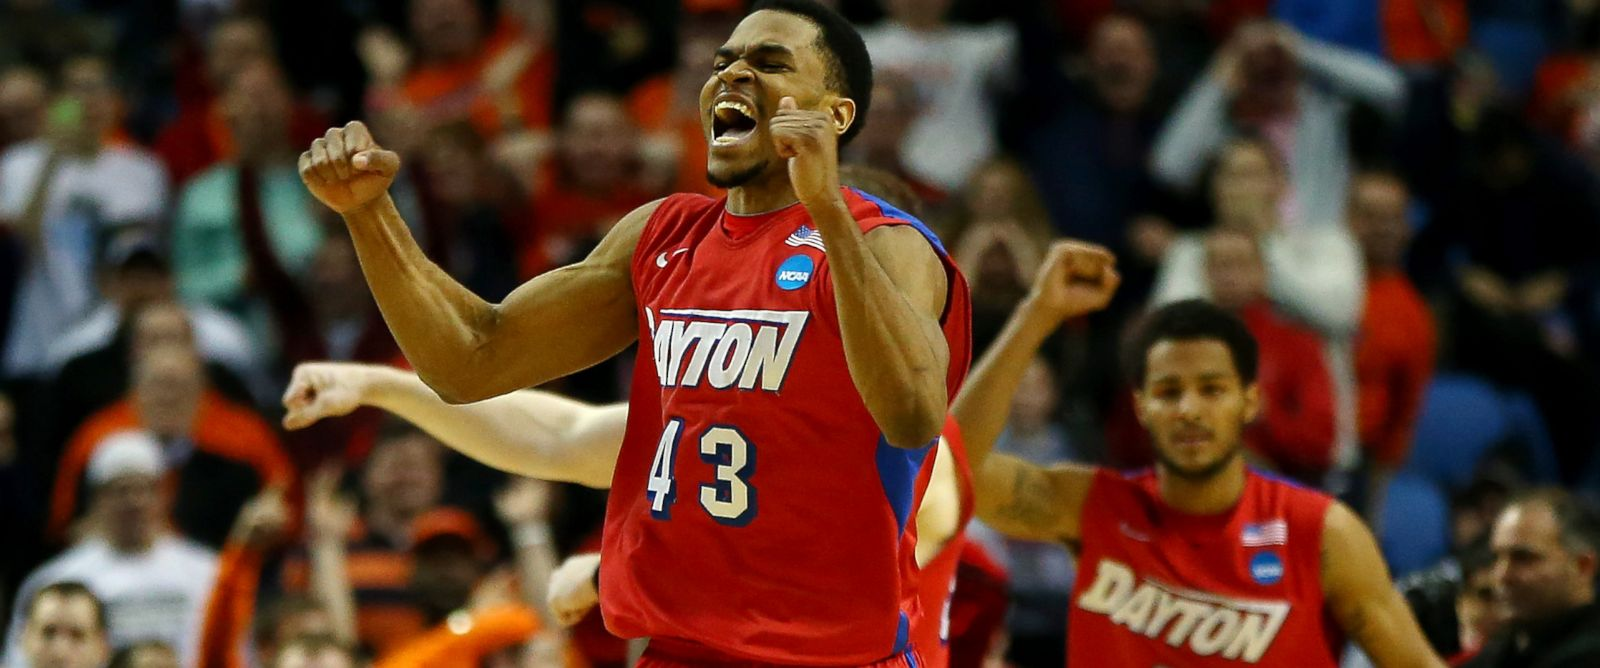 PHOTO: Vee Sanford of the Dayton Flyers reacts after defeating the Ohio State Buckeyes